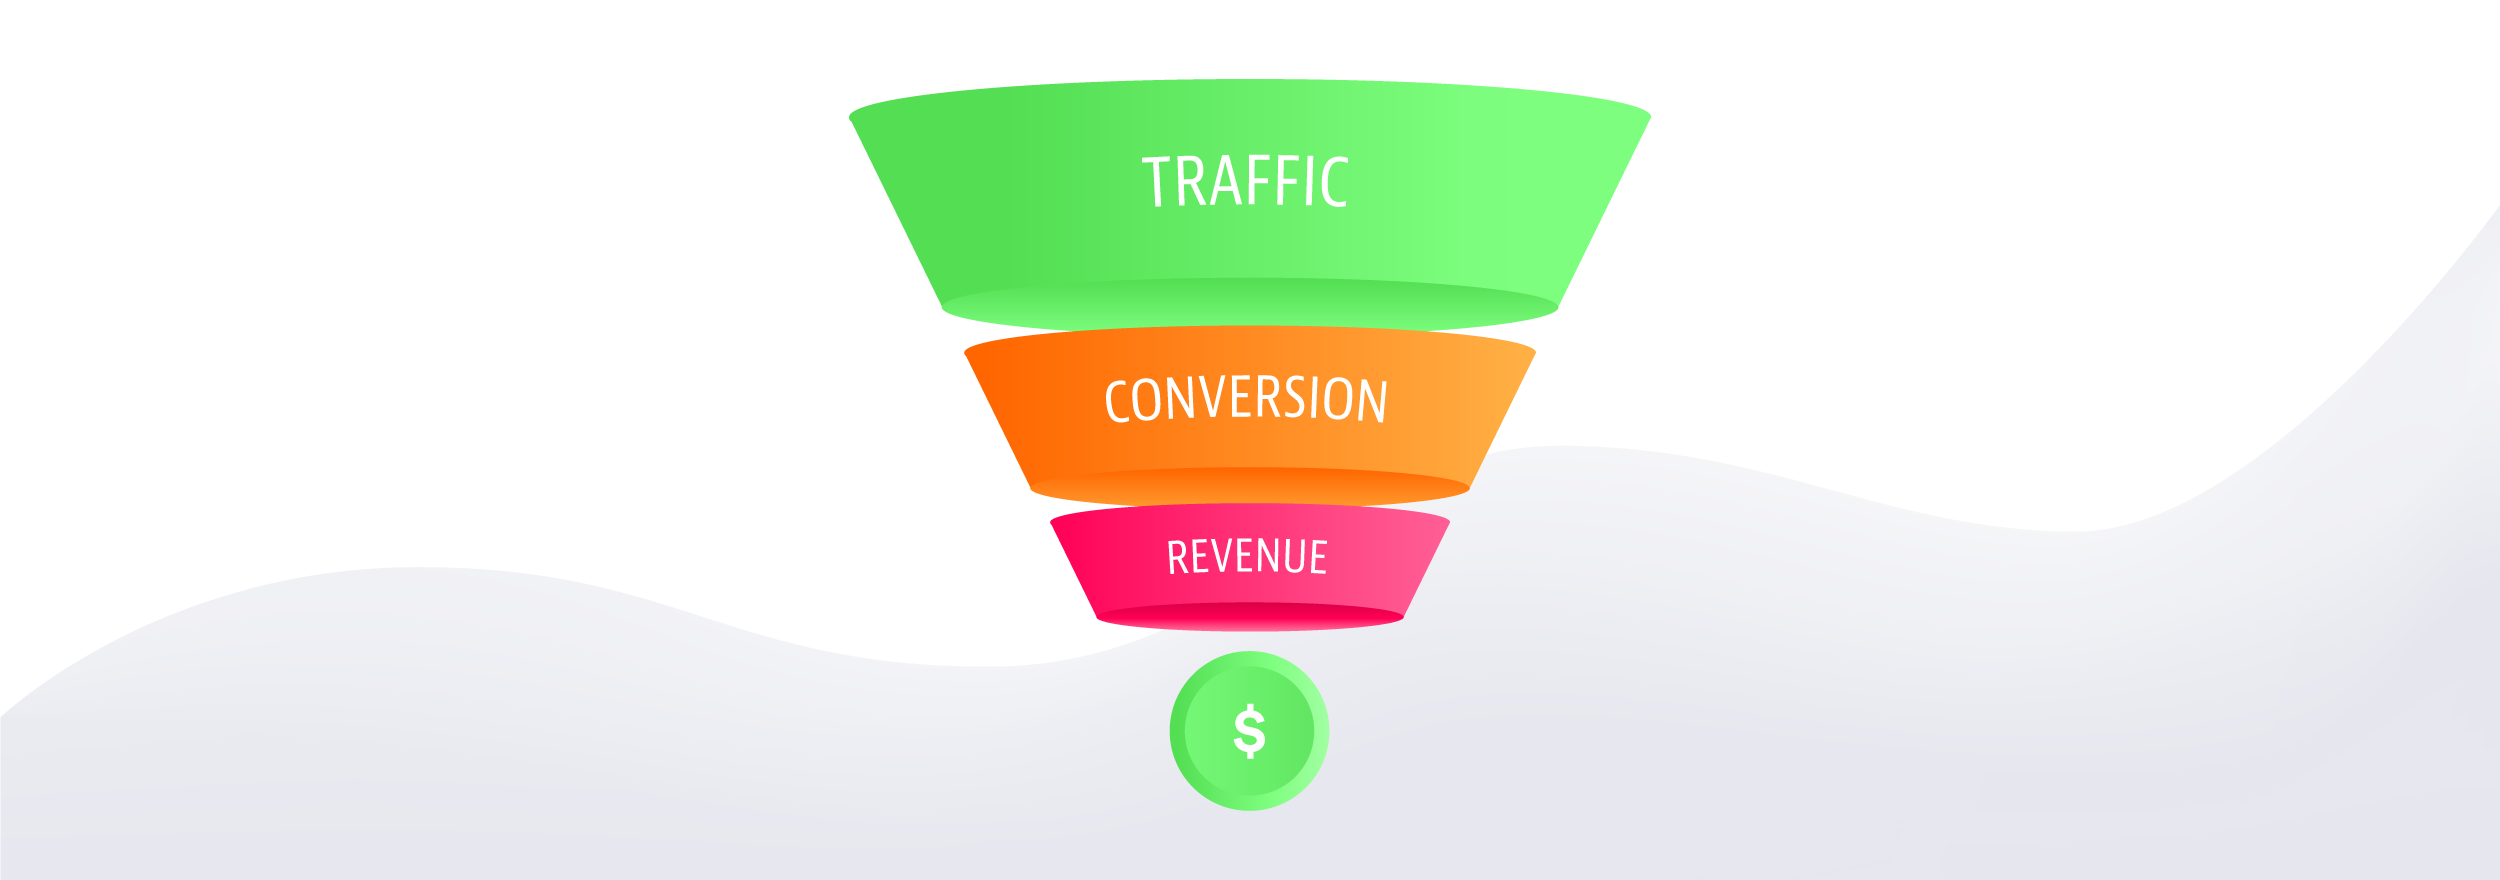 Marketing Funnel Growth Guide 2019: Analysis, Strategies, Tactics, and Tools